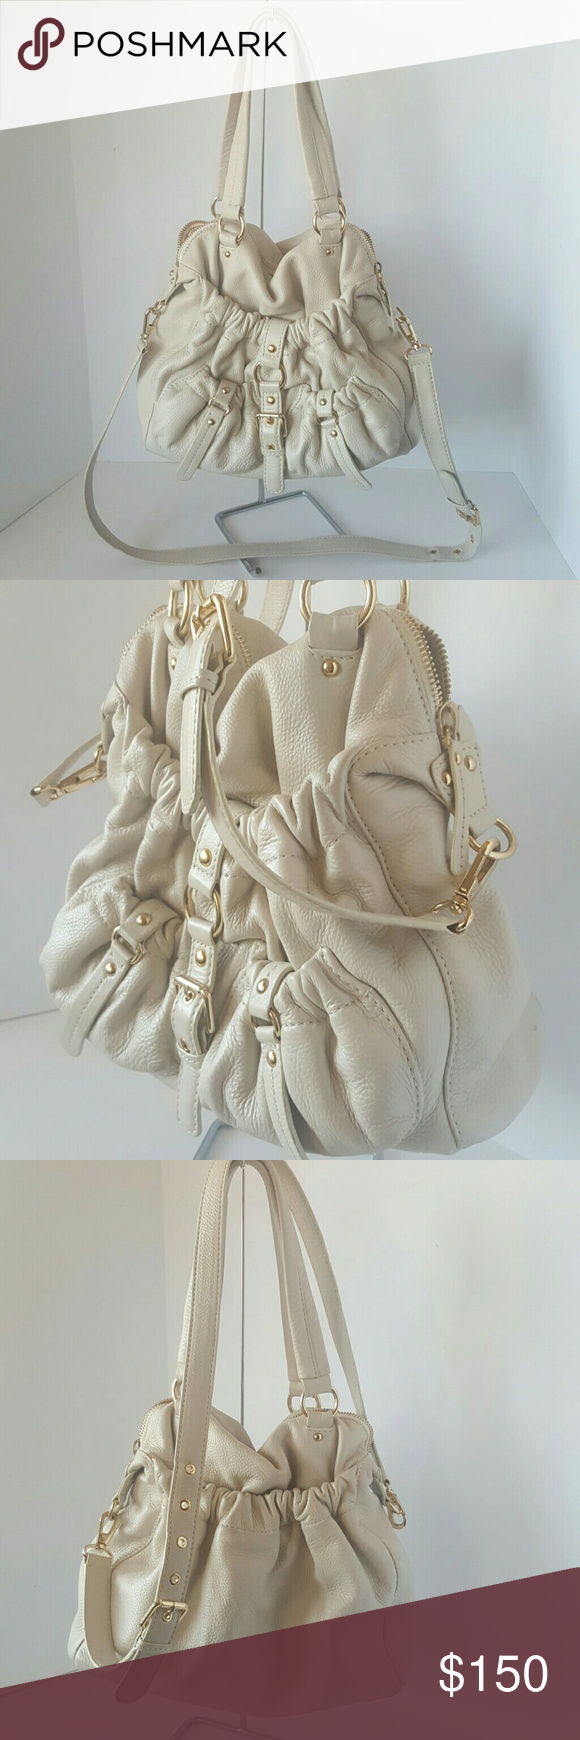 """Michael Kors Bag Purse Beautiful authentic bone vanilla leather MK Michael Kors Tote or shoulder bag. Gold tone hardware. Beige monogrammed soft fabric interior fully lined in genuine leather. Lots of compartment pockets. Pre-owned, has a few scuffs and light dirt marks from use. Can be professionally cleaned if you want it perfect! Tote Strap drop: 9""""  removeable adjustable strap is up to 22"""" long.  Fast ship!! Michael Kors Bags Shoulder Bags"""